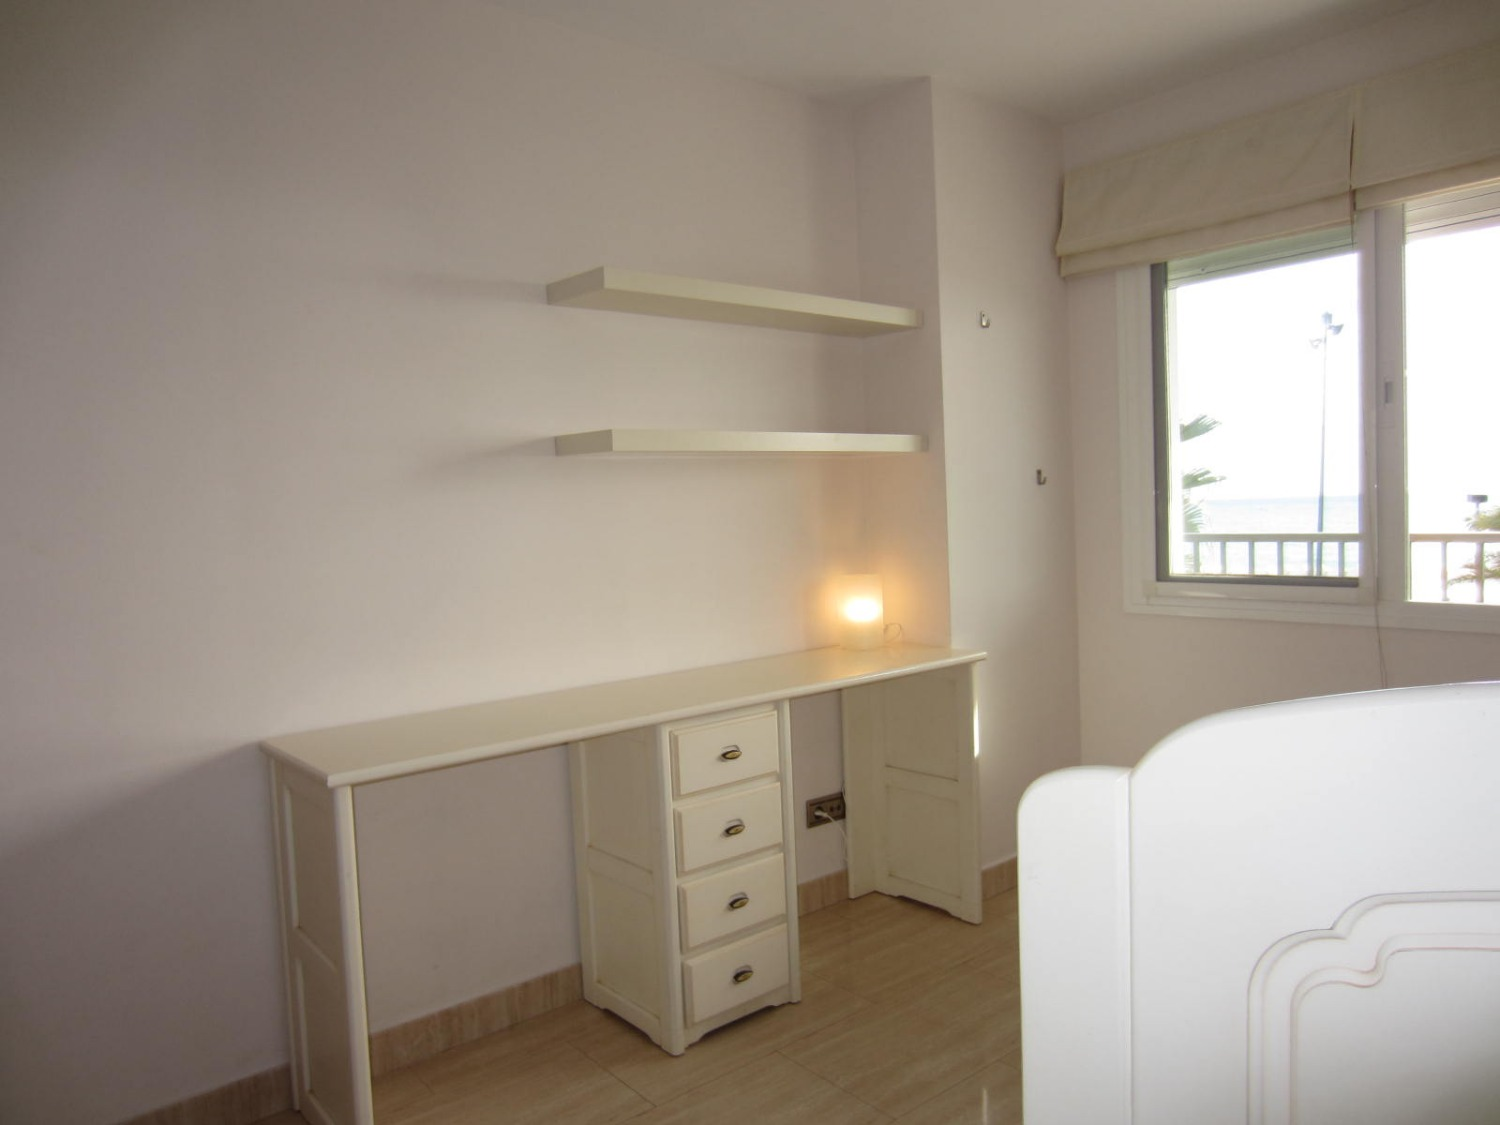 Appartement en location à Las Gaviotas (Fuengirola)